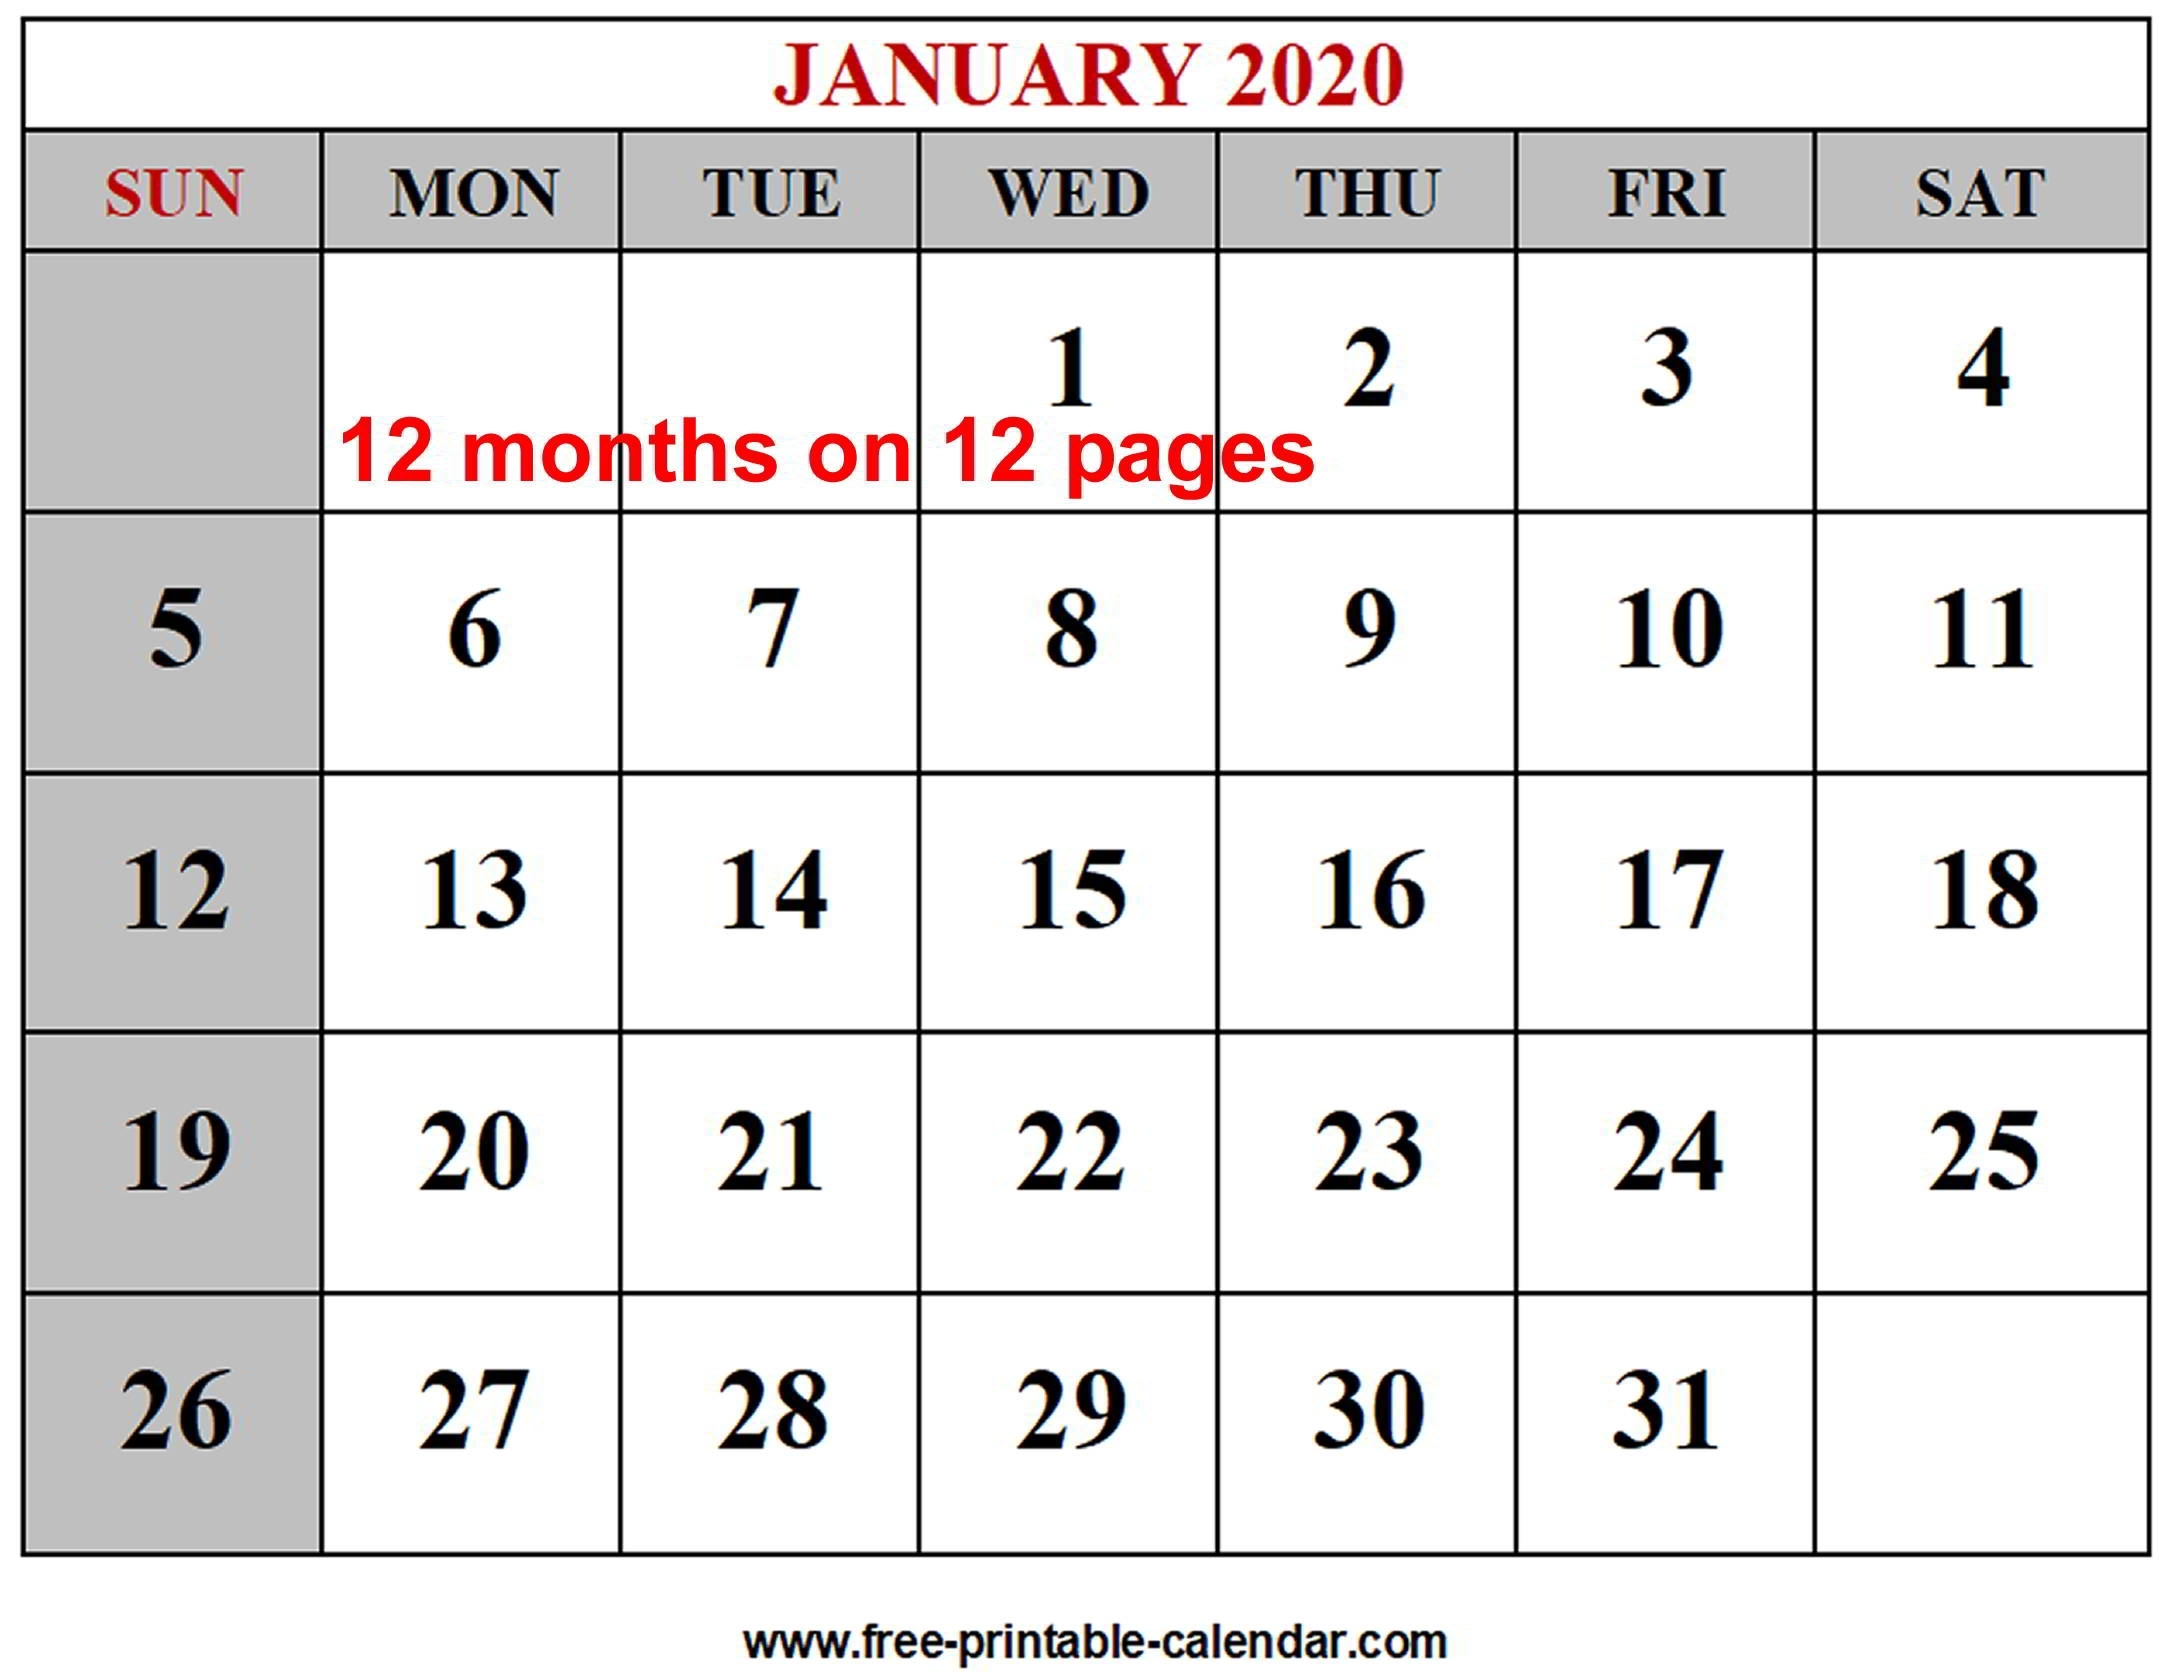 Year 2020 Calendar Templates - Free-Printable-Calendar in Free Printable Monthly Calendar For Year 2020